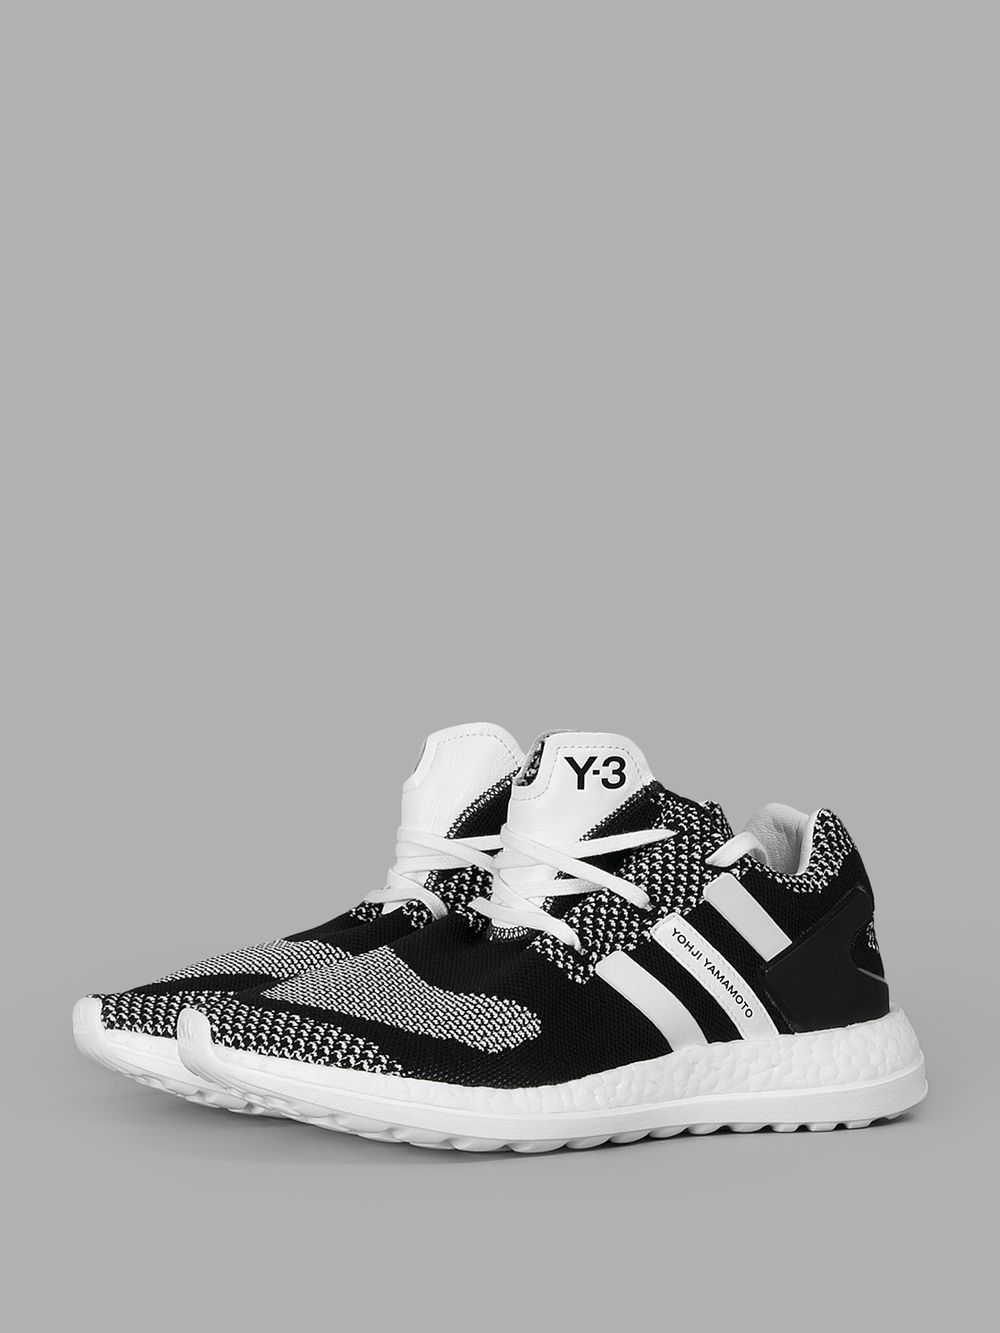 online store 1604c 8fc8d adidas ultra boost y3